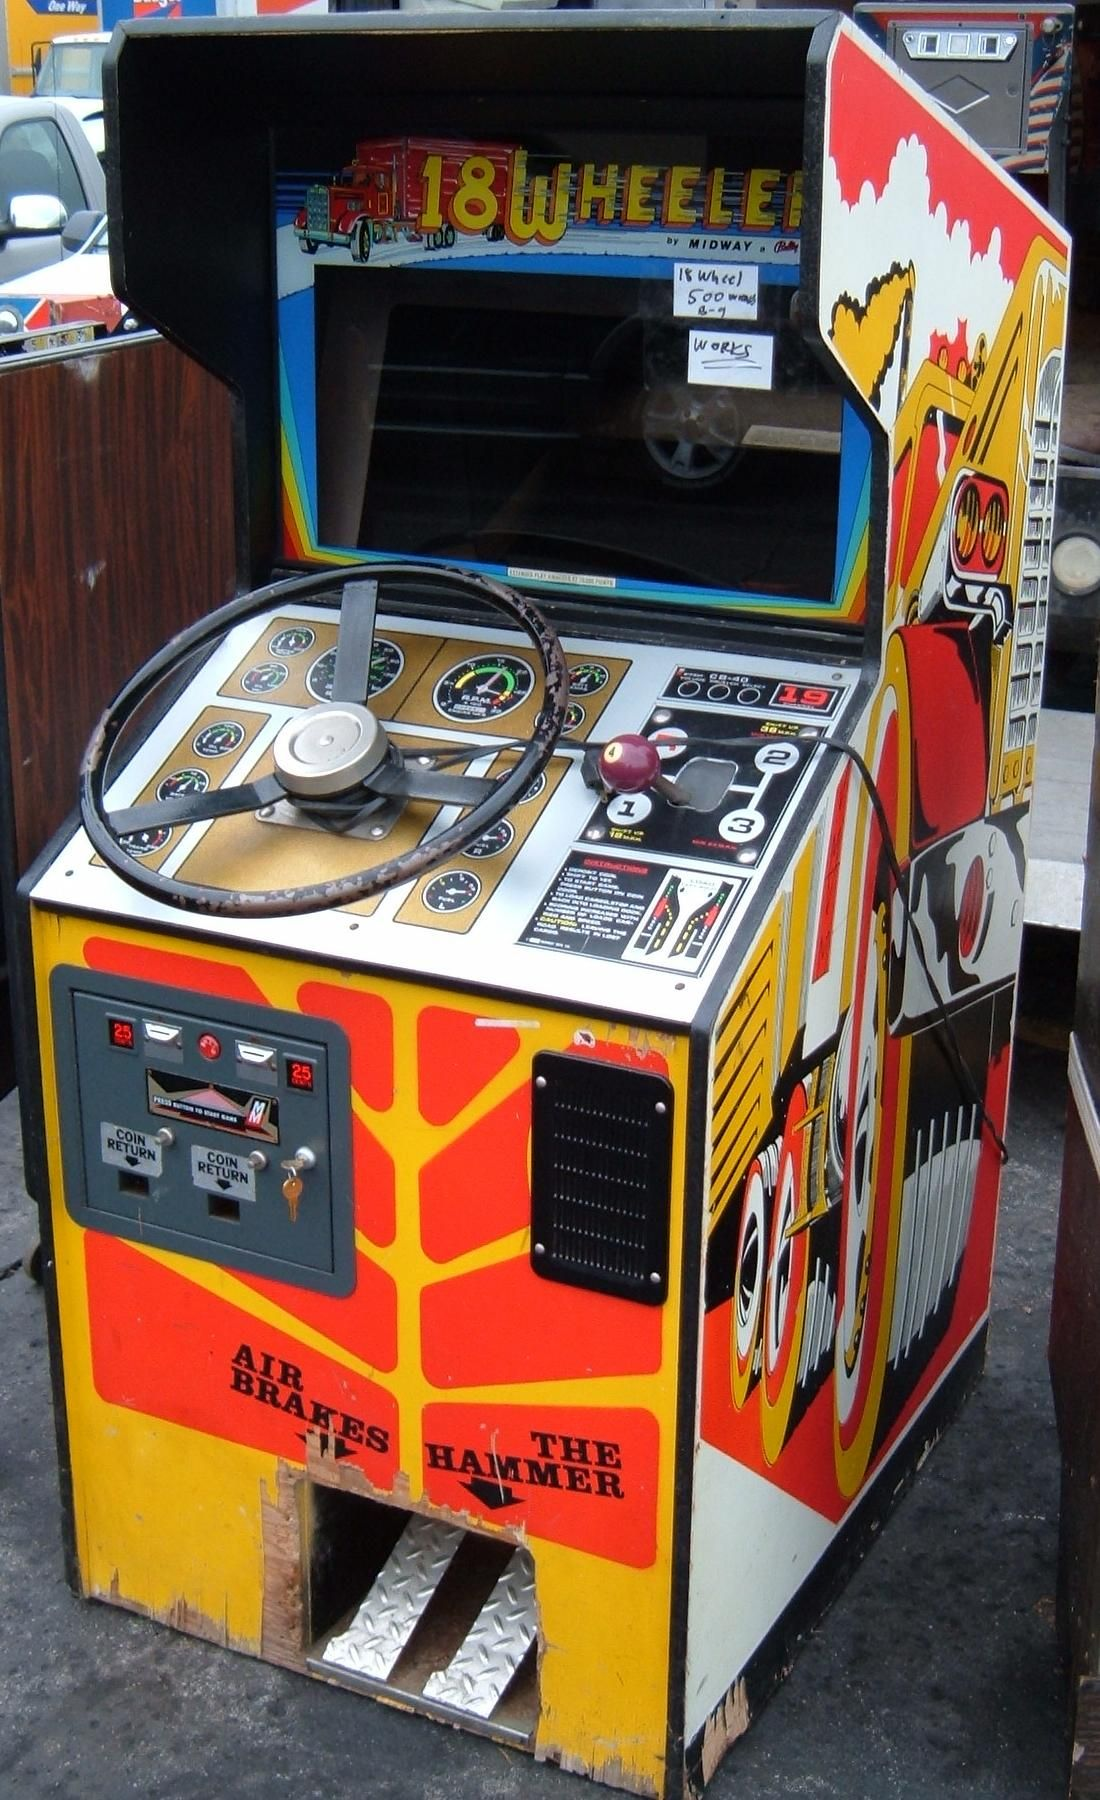 Pin on 09 Retro Arcade Gamesand more...